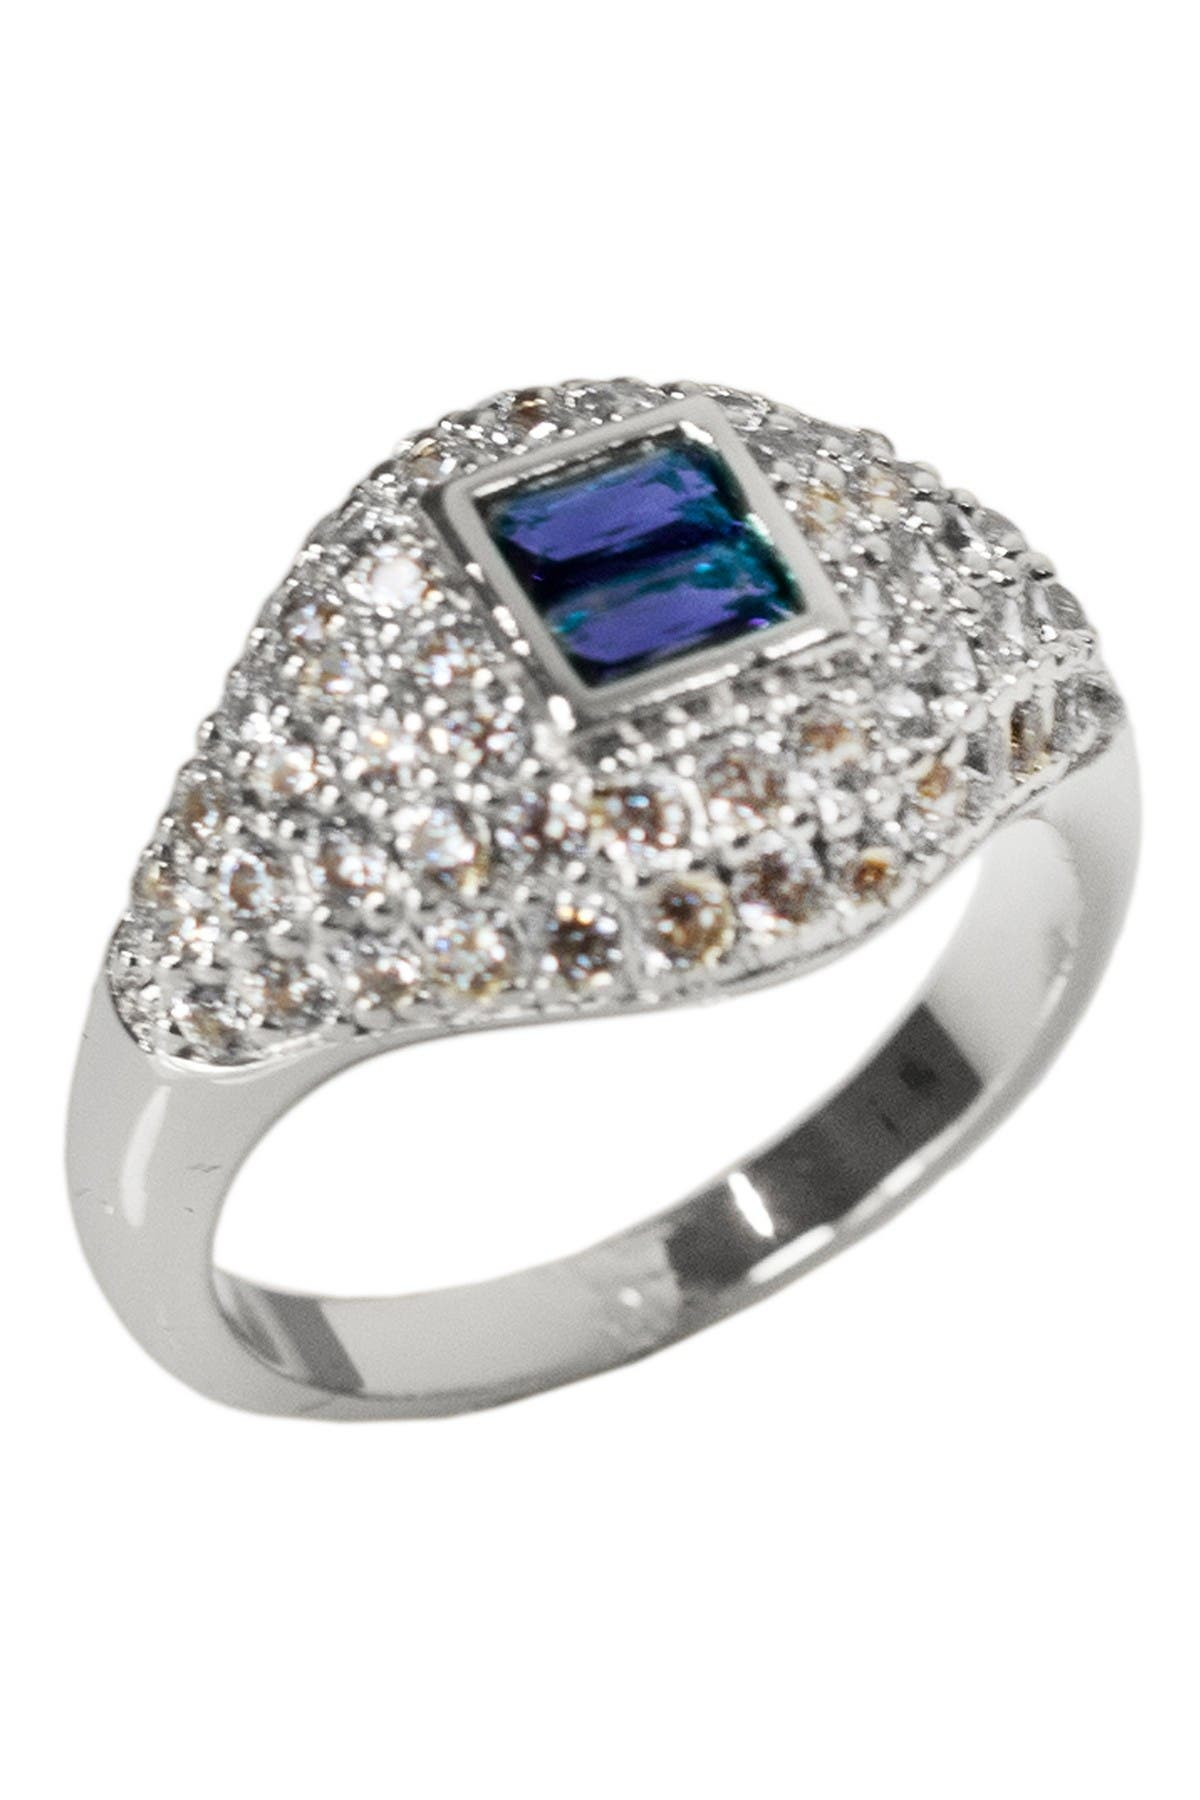 Image of CZ By Kenneth Jay Lane Pave CZ Signet Pinky Ring